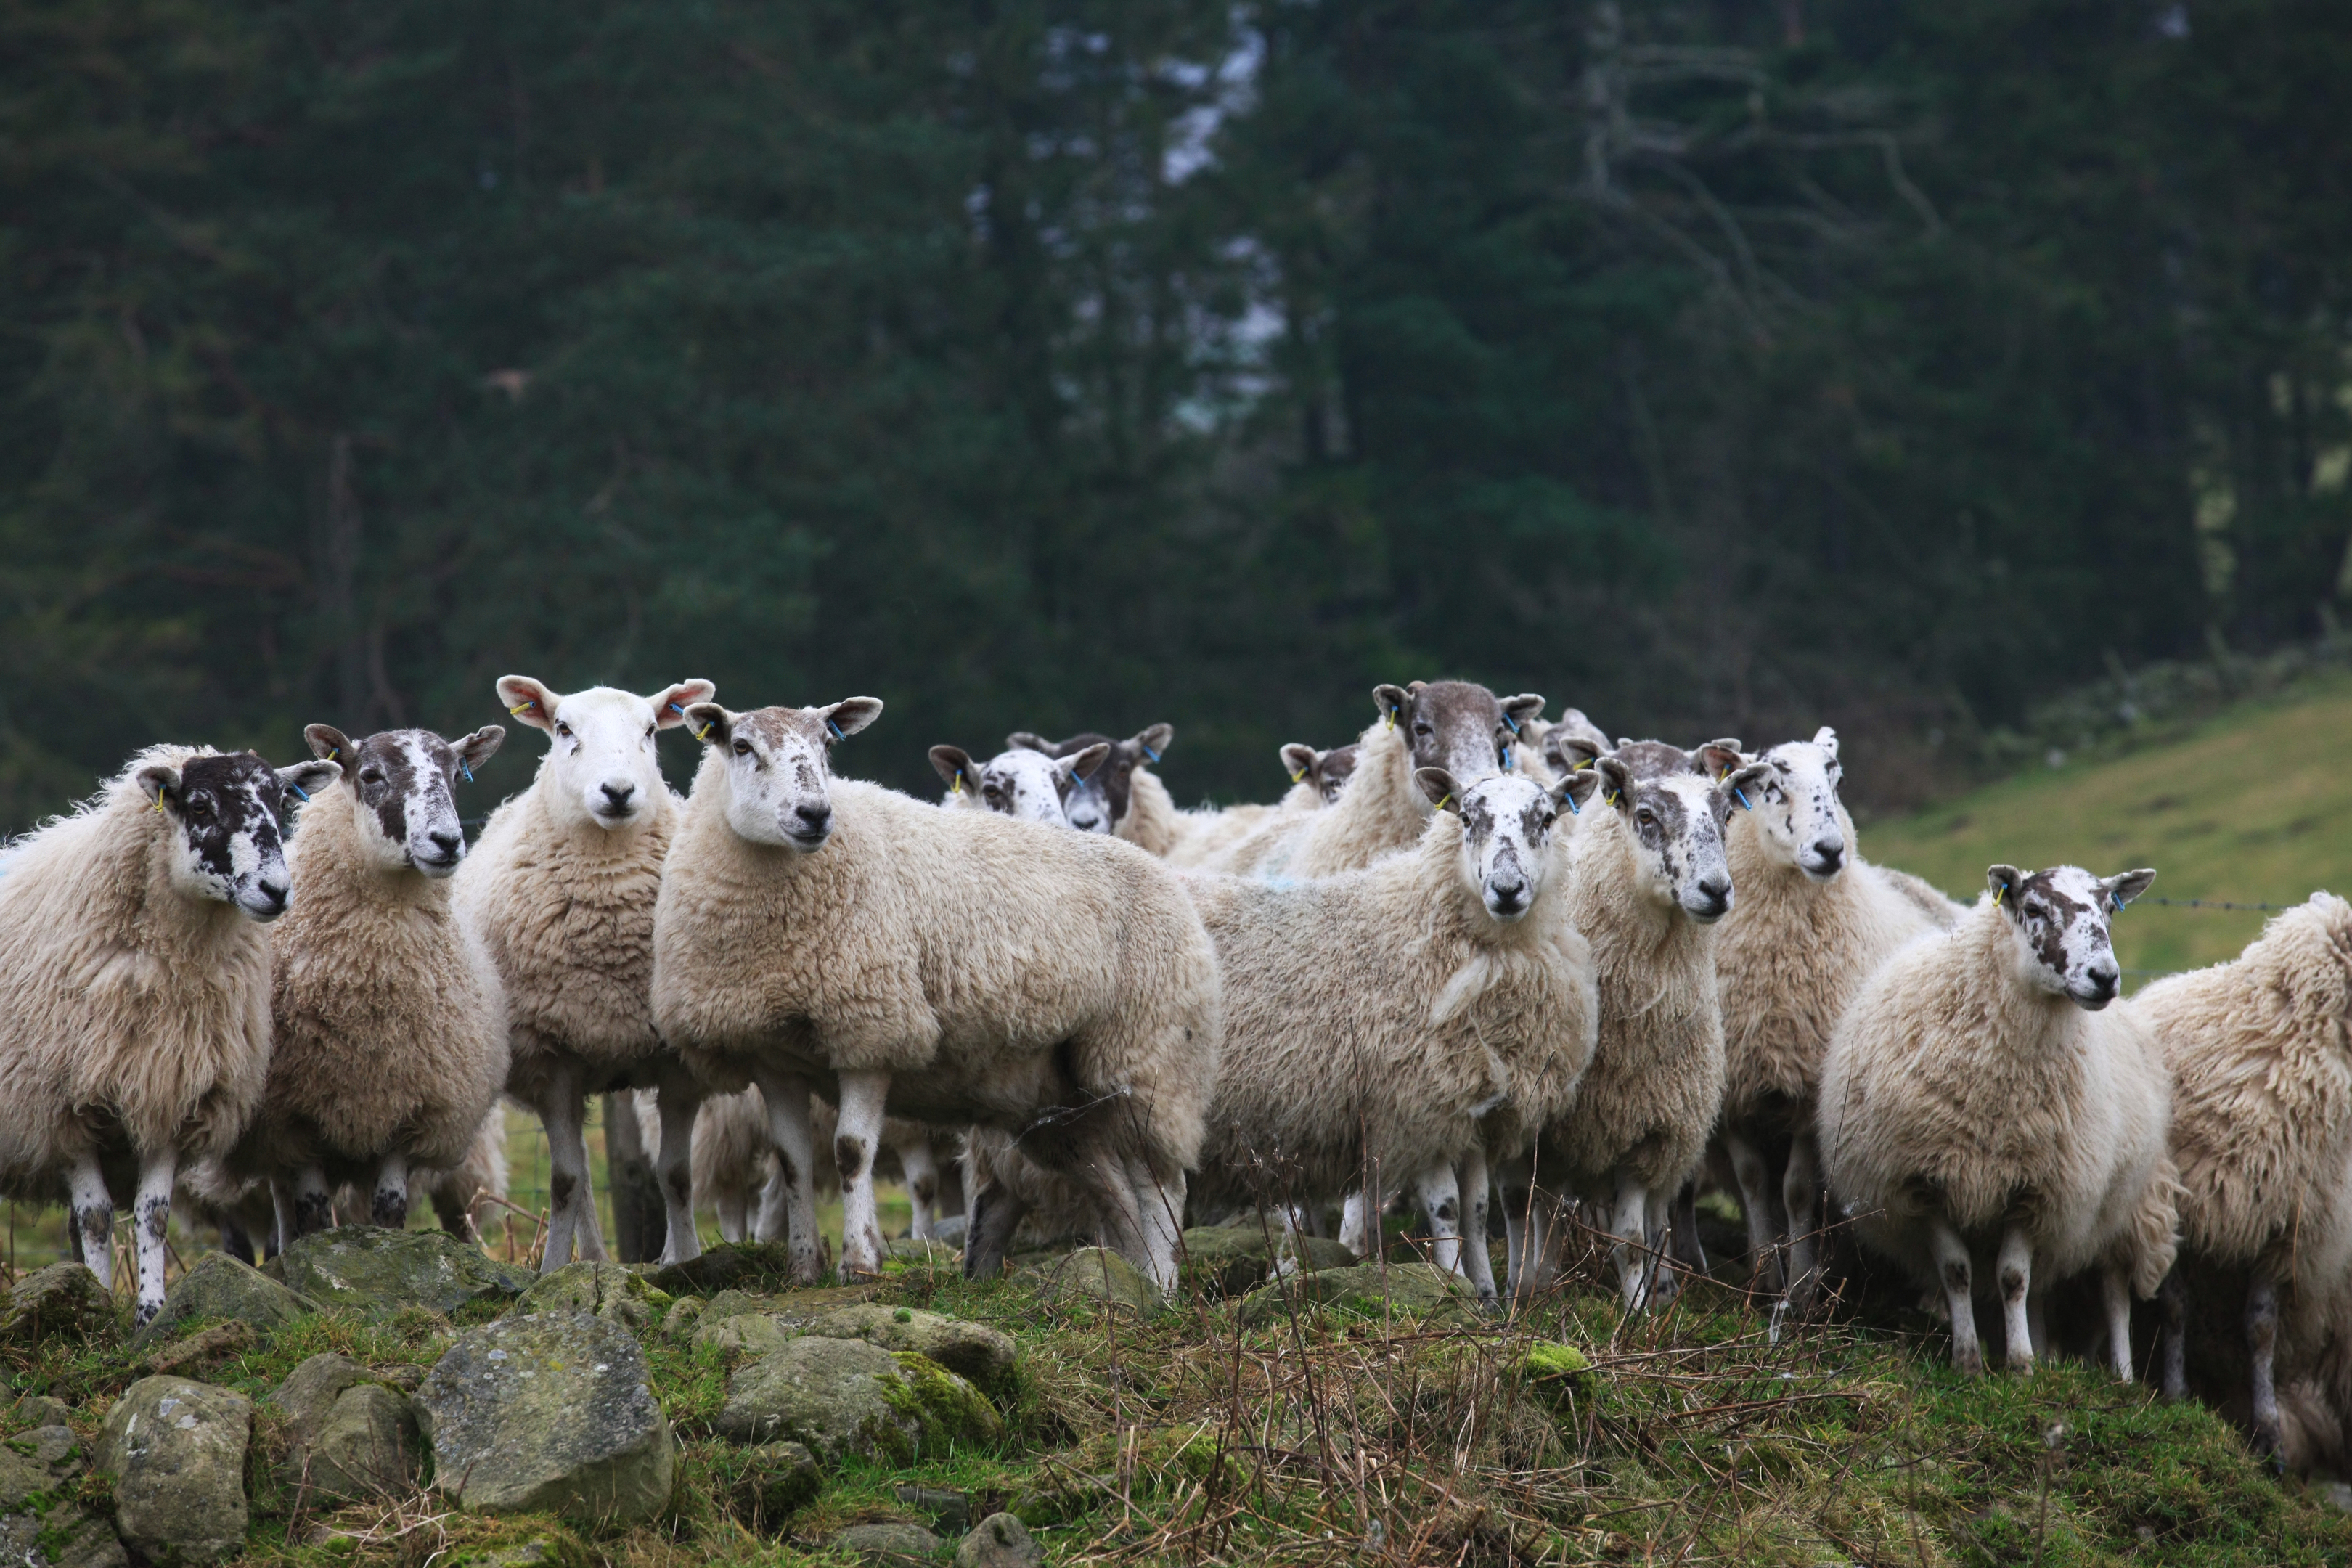 Dog owners are urged to keep their pets under control around sheep.